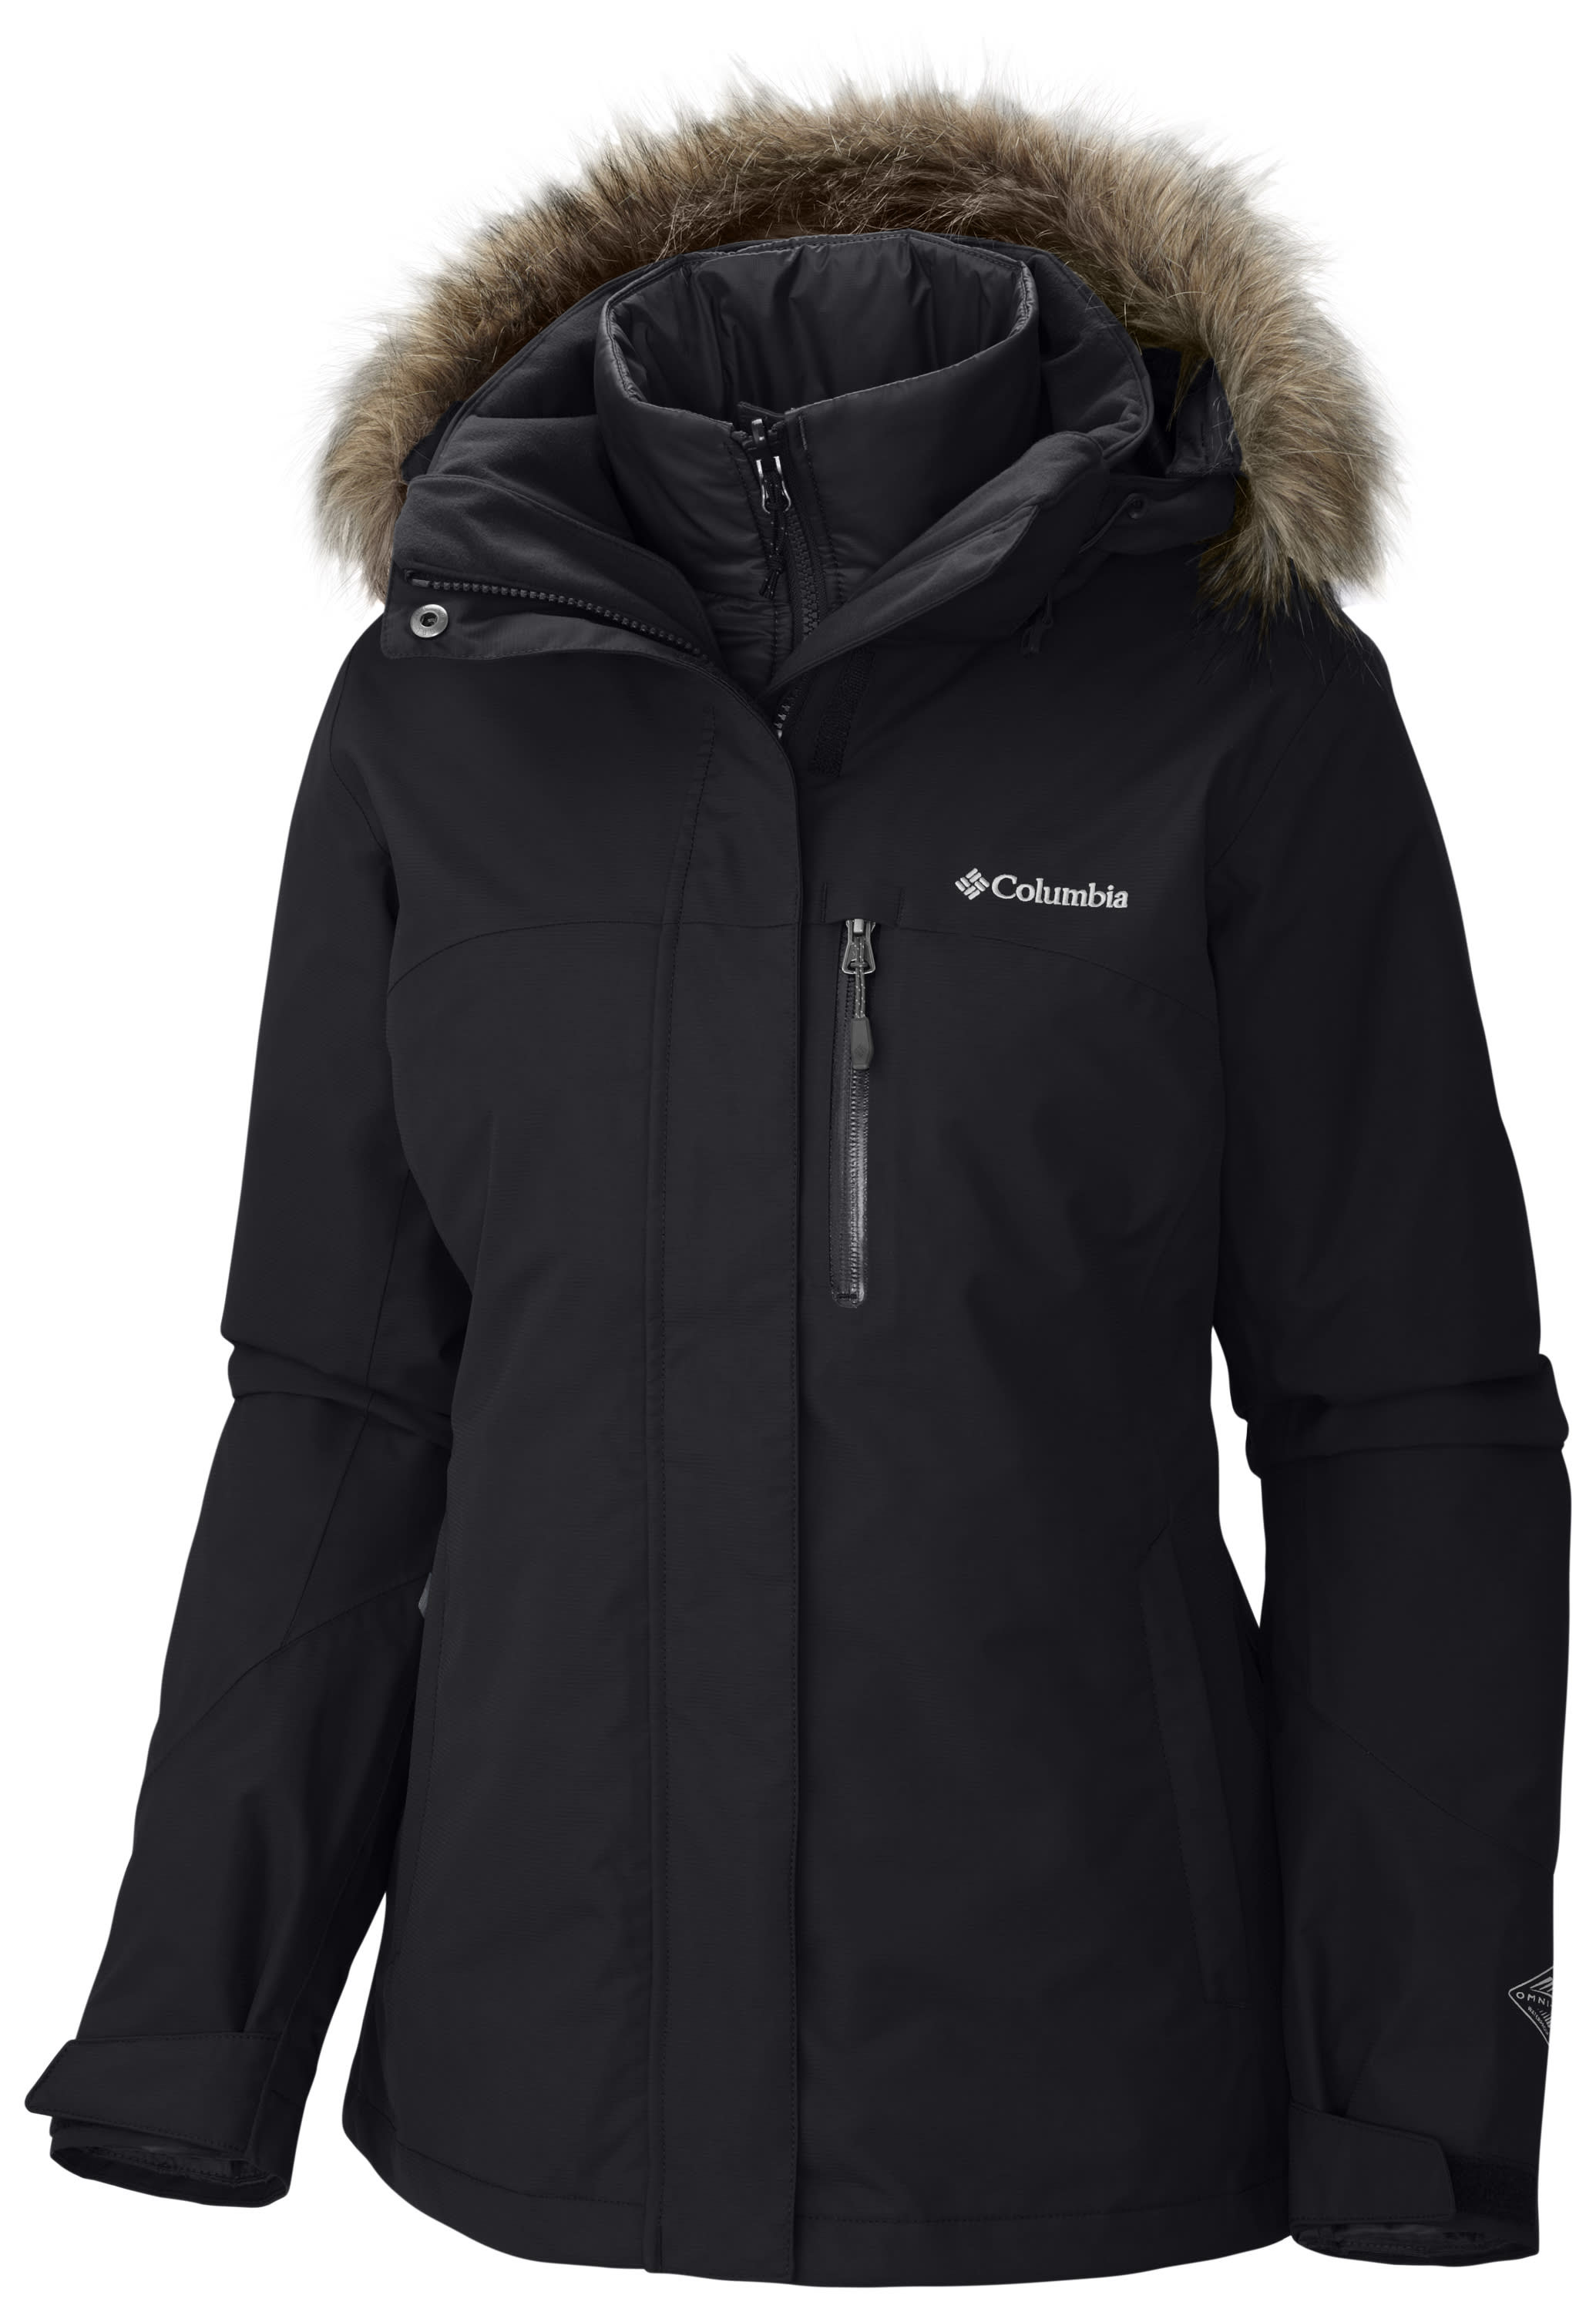 columbia winter jackets for women on sale - jackets in my home